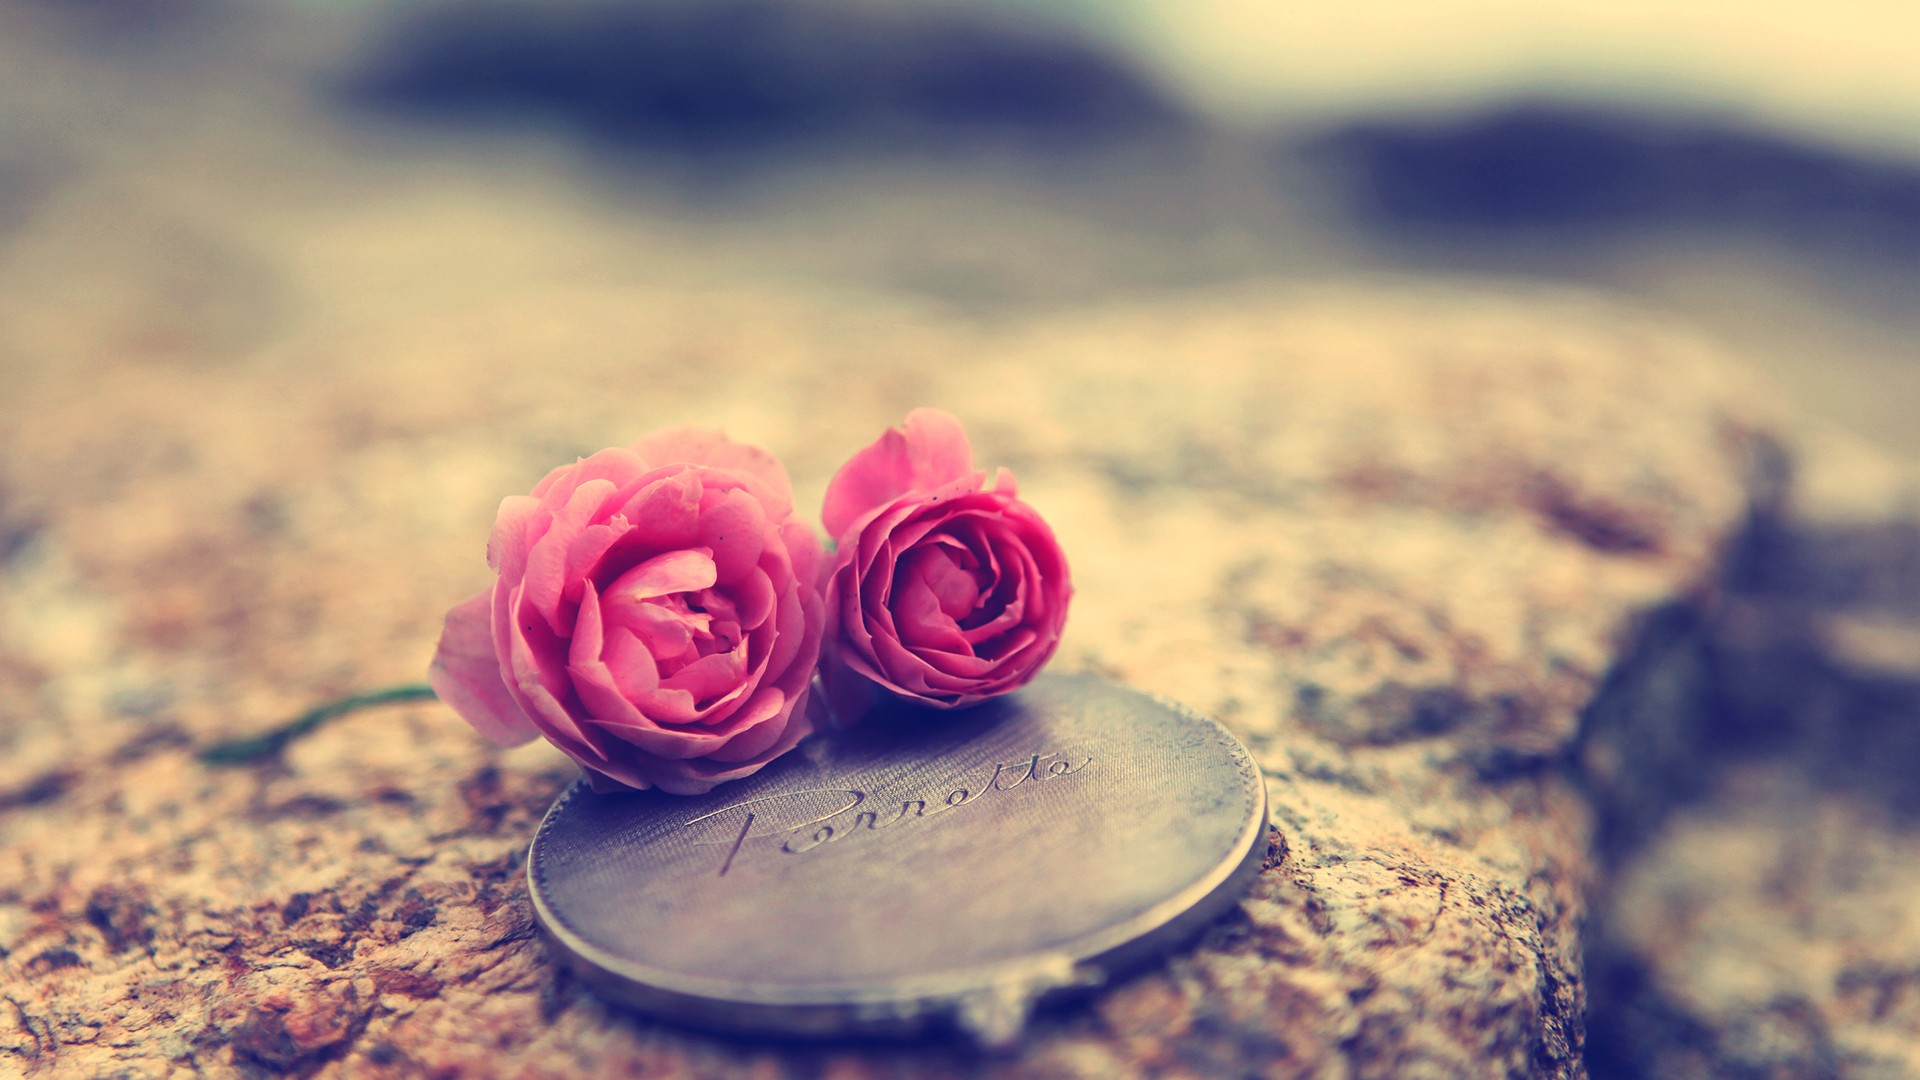 Love Hd Wallpapers Tumblr : Tumblr Love Backgrounds wallpaper 1280x720 #28242